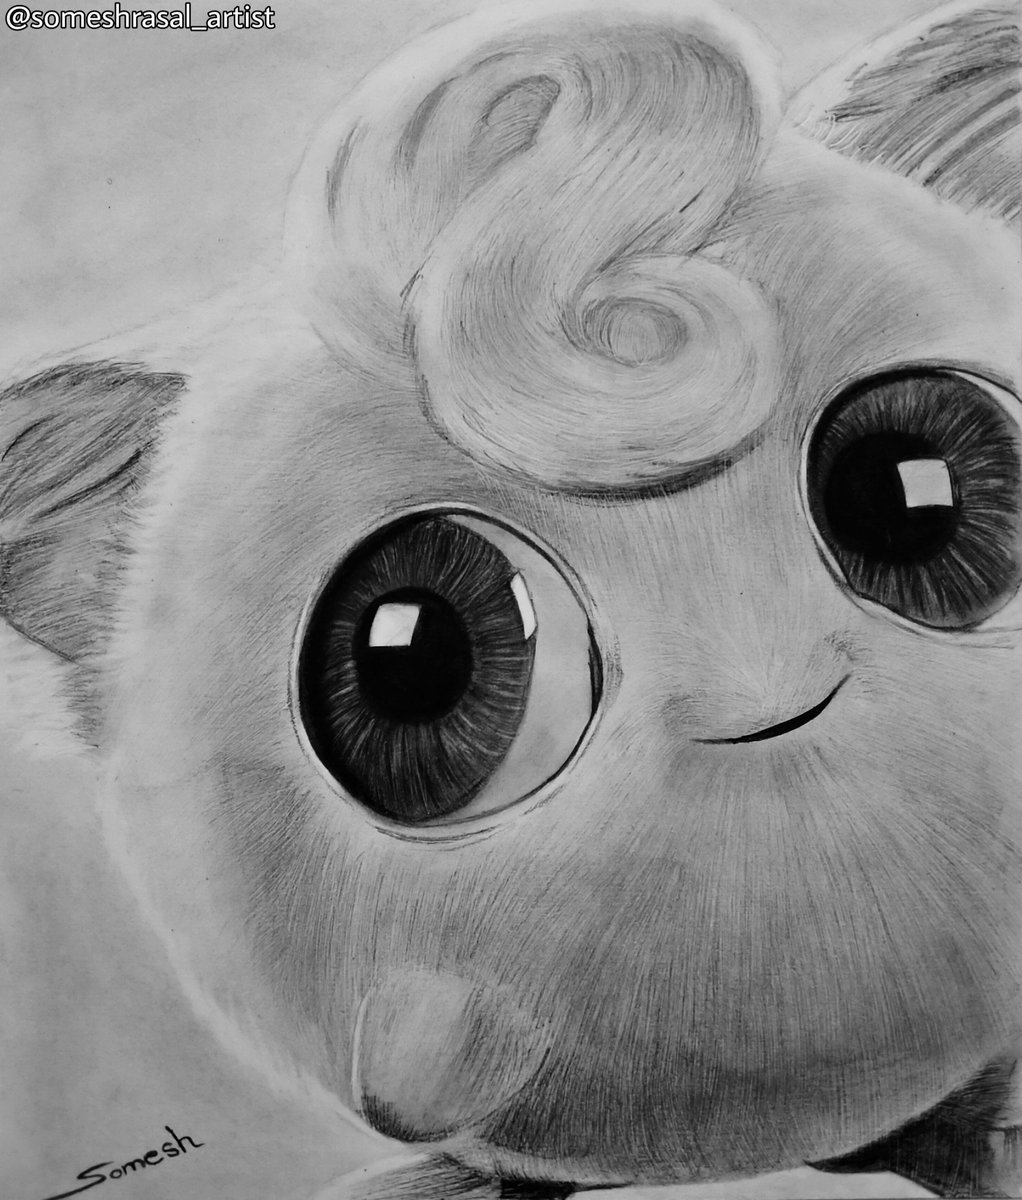 Drawing of cute Pokemon... I don't know this Pokemon name... I like eyes of this Pokemon If you know this Pokemon name then comment... Draw by @someshrasal_artist(insta) . . #sketch #drawing #art #artline #pokemon #beautiful #pokemonsketch #pokemondrawing #cute #realisticpic.twitter.com/2YNSwCwtWn